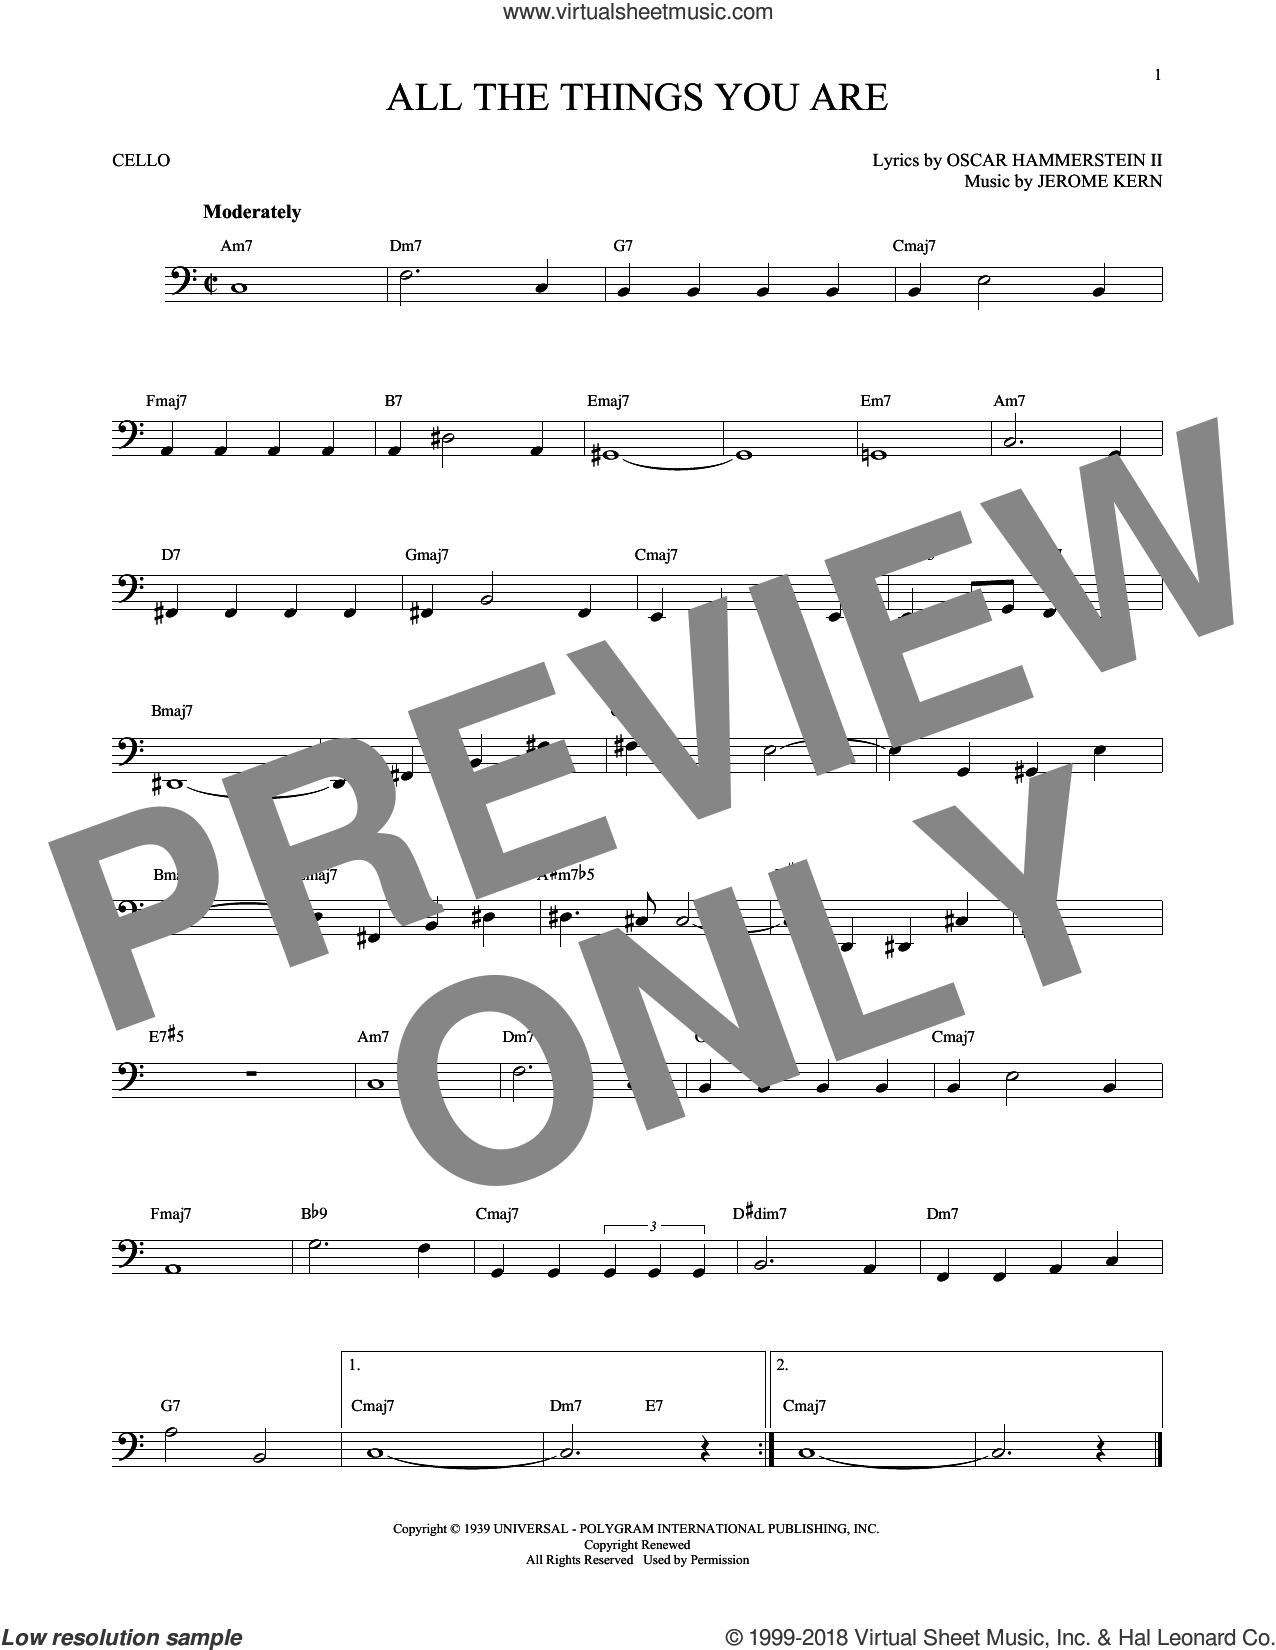 All The Things You Are sheet music for cello solo by Oscar II Hammerstein, Jack Leonard with Tommy Dorsey Orchestra and Jerome Kern. Score Image Preview.